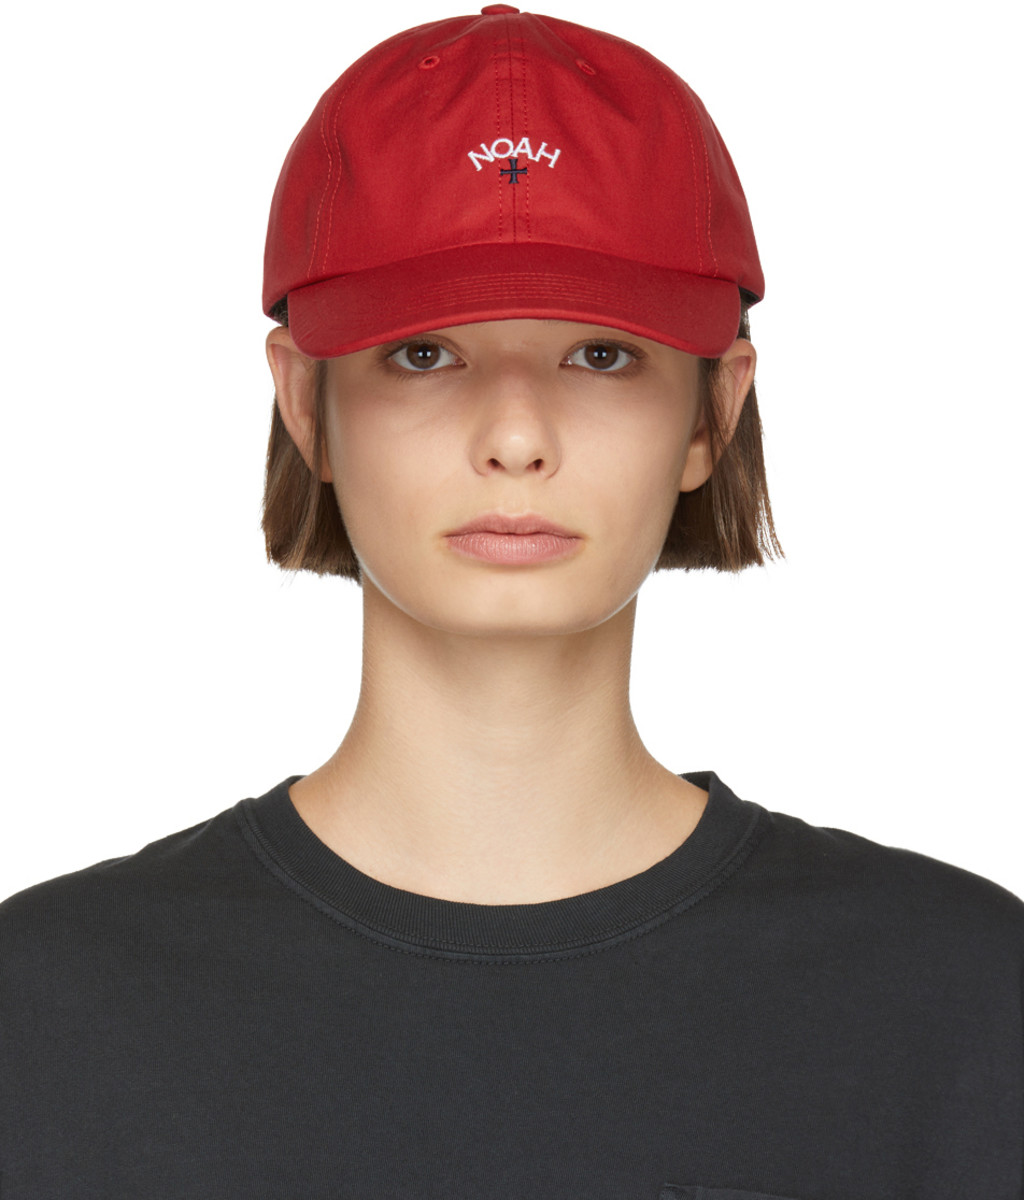 fba84f34 Noah Nyc for Women SS19 Collection | SSENSE